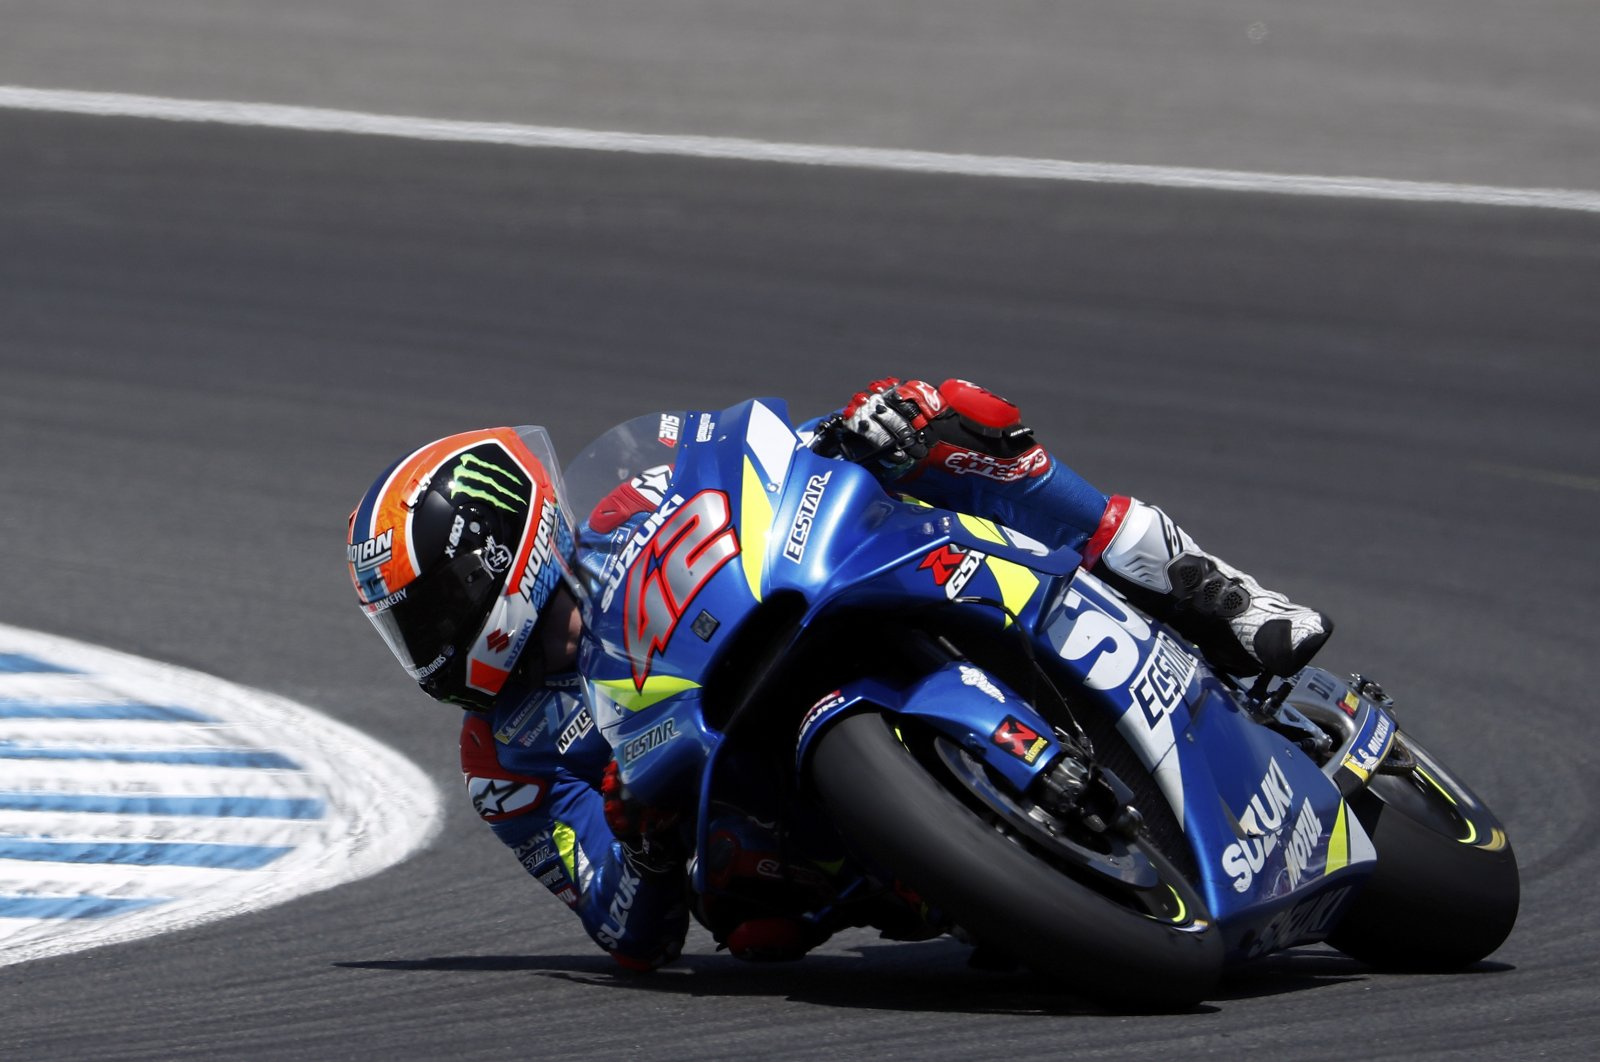 MotoGP rider Alex Rins of Spain takes a curve during the Spanish Motorcycle Grand Prix at the Angel Nieto racetrack in Jerez de la Frontera, Spain, May 5, 2019. (AP Photo)